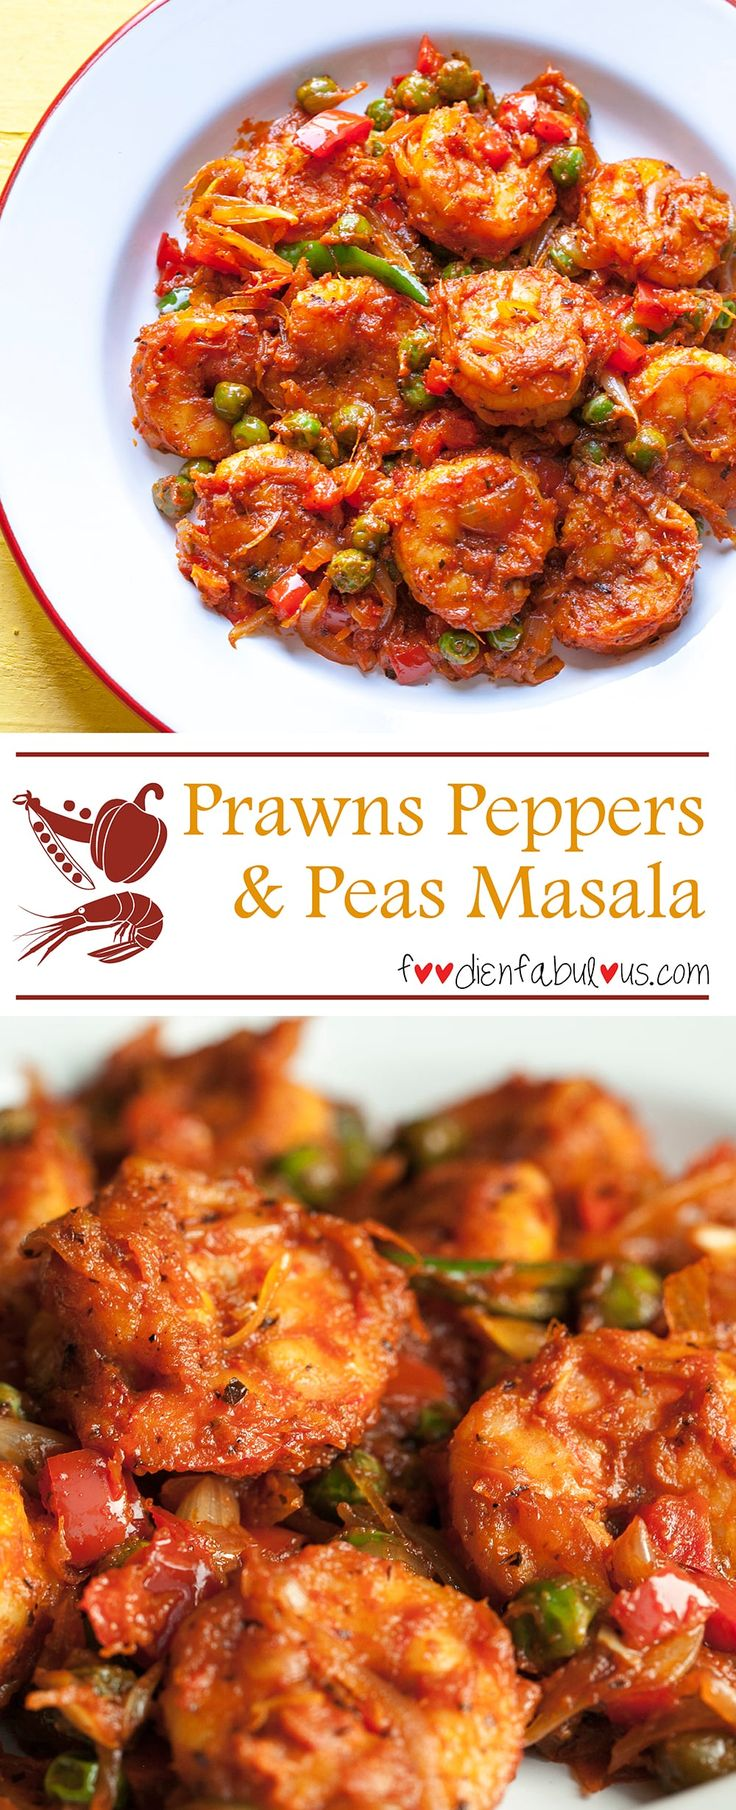 Easy recipe for Indian-style Prawns masala with red bell peppers (you can easily replace with green capsicum) and fresh green peas. Tastes great with rotis (Indian flat-breads) or even as a accompaniment to a simple home-cooked rice-dal dinner.